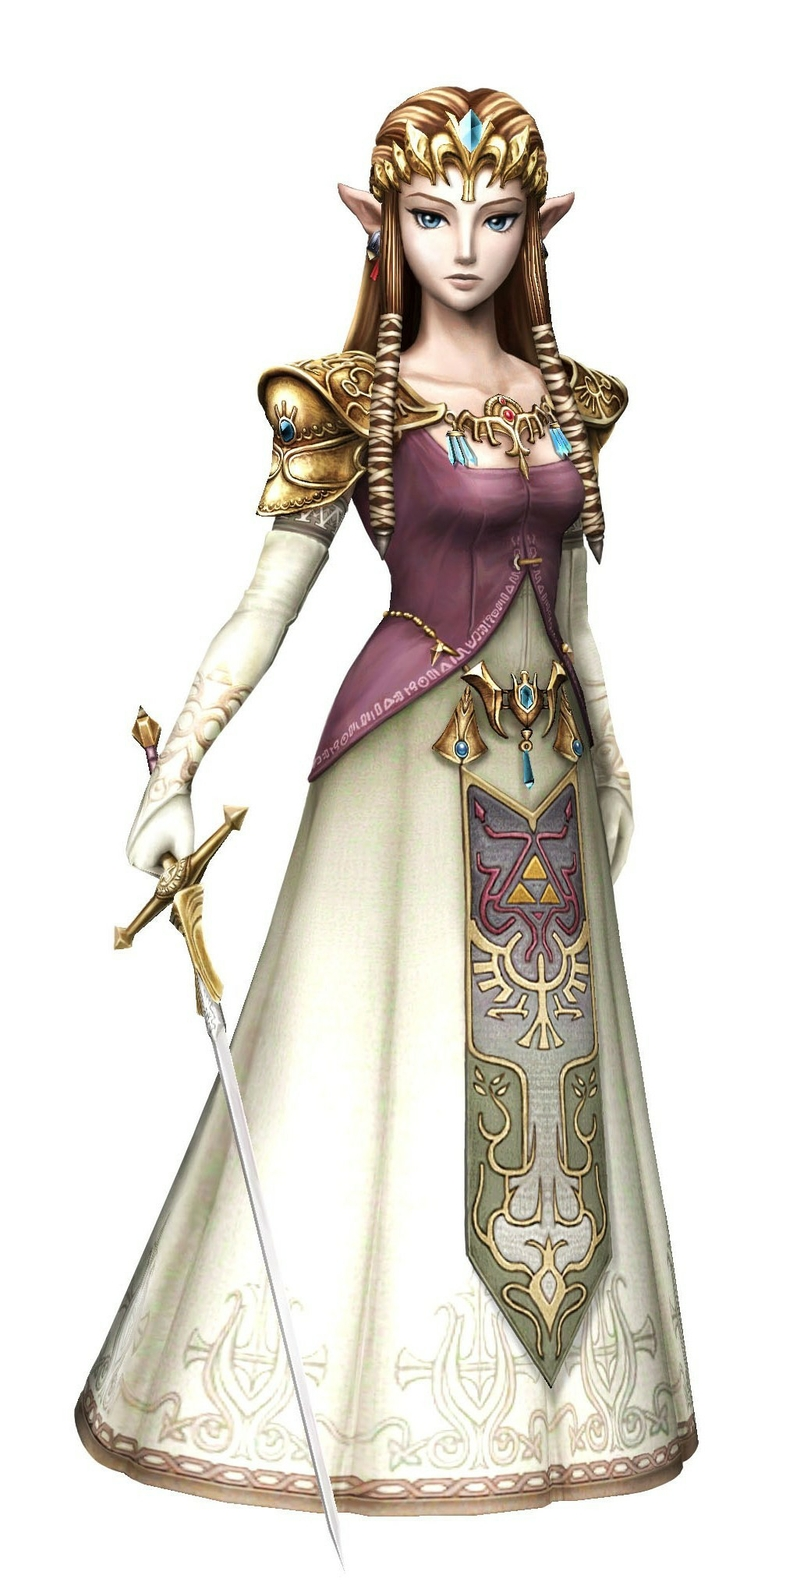 of zelda princess zelda 1026x2048 wallpaper Video Games Zelda 800x1596